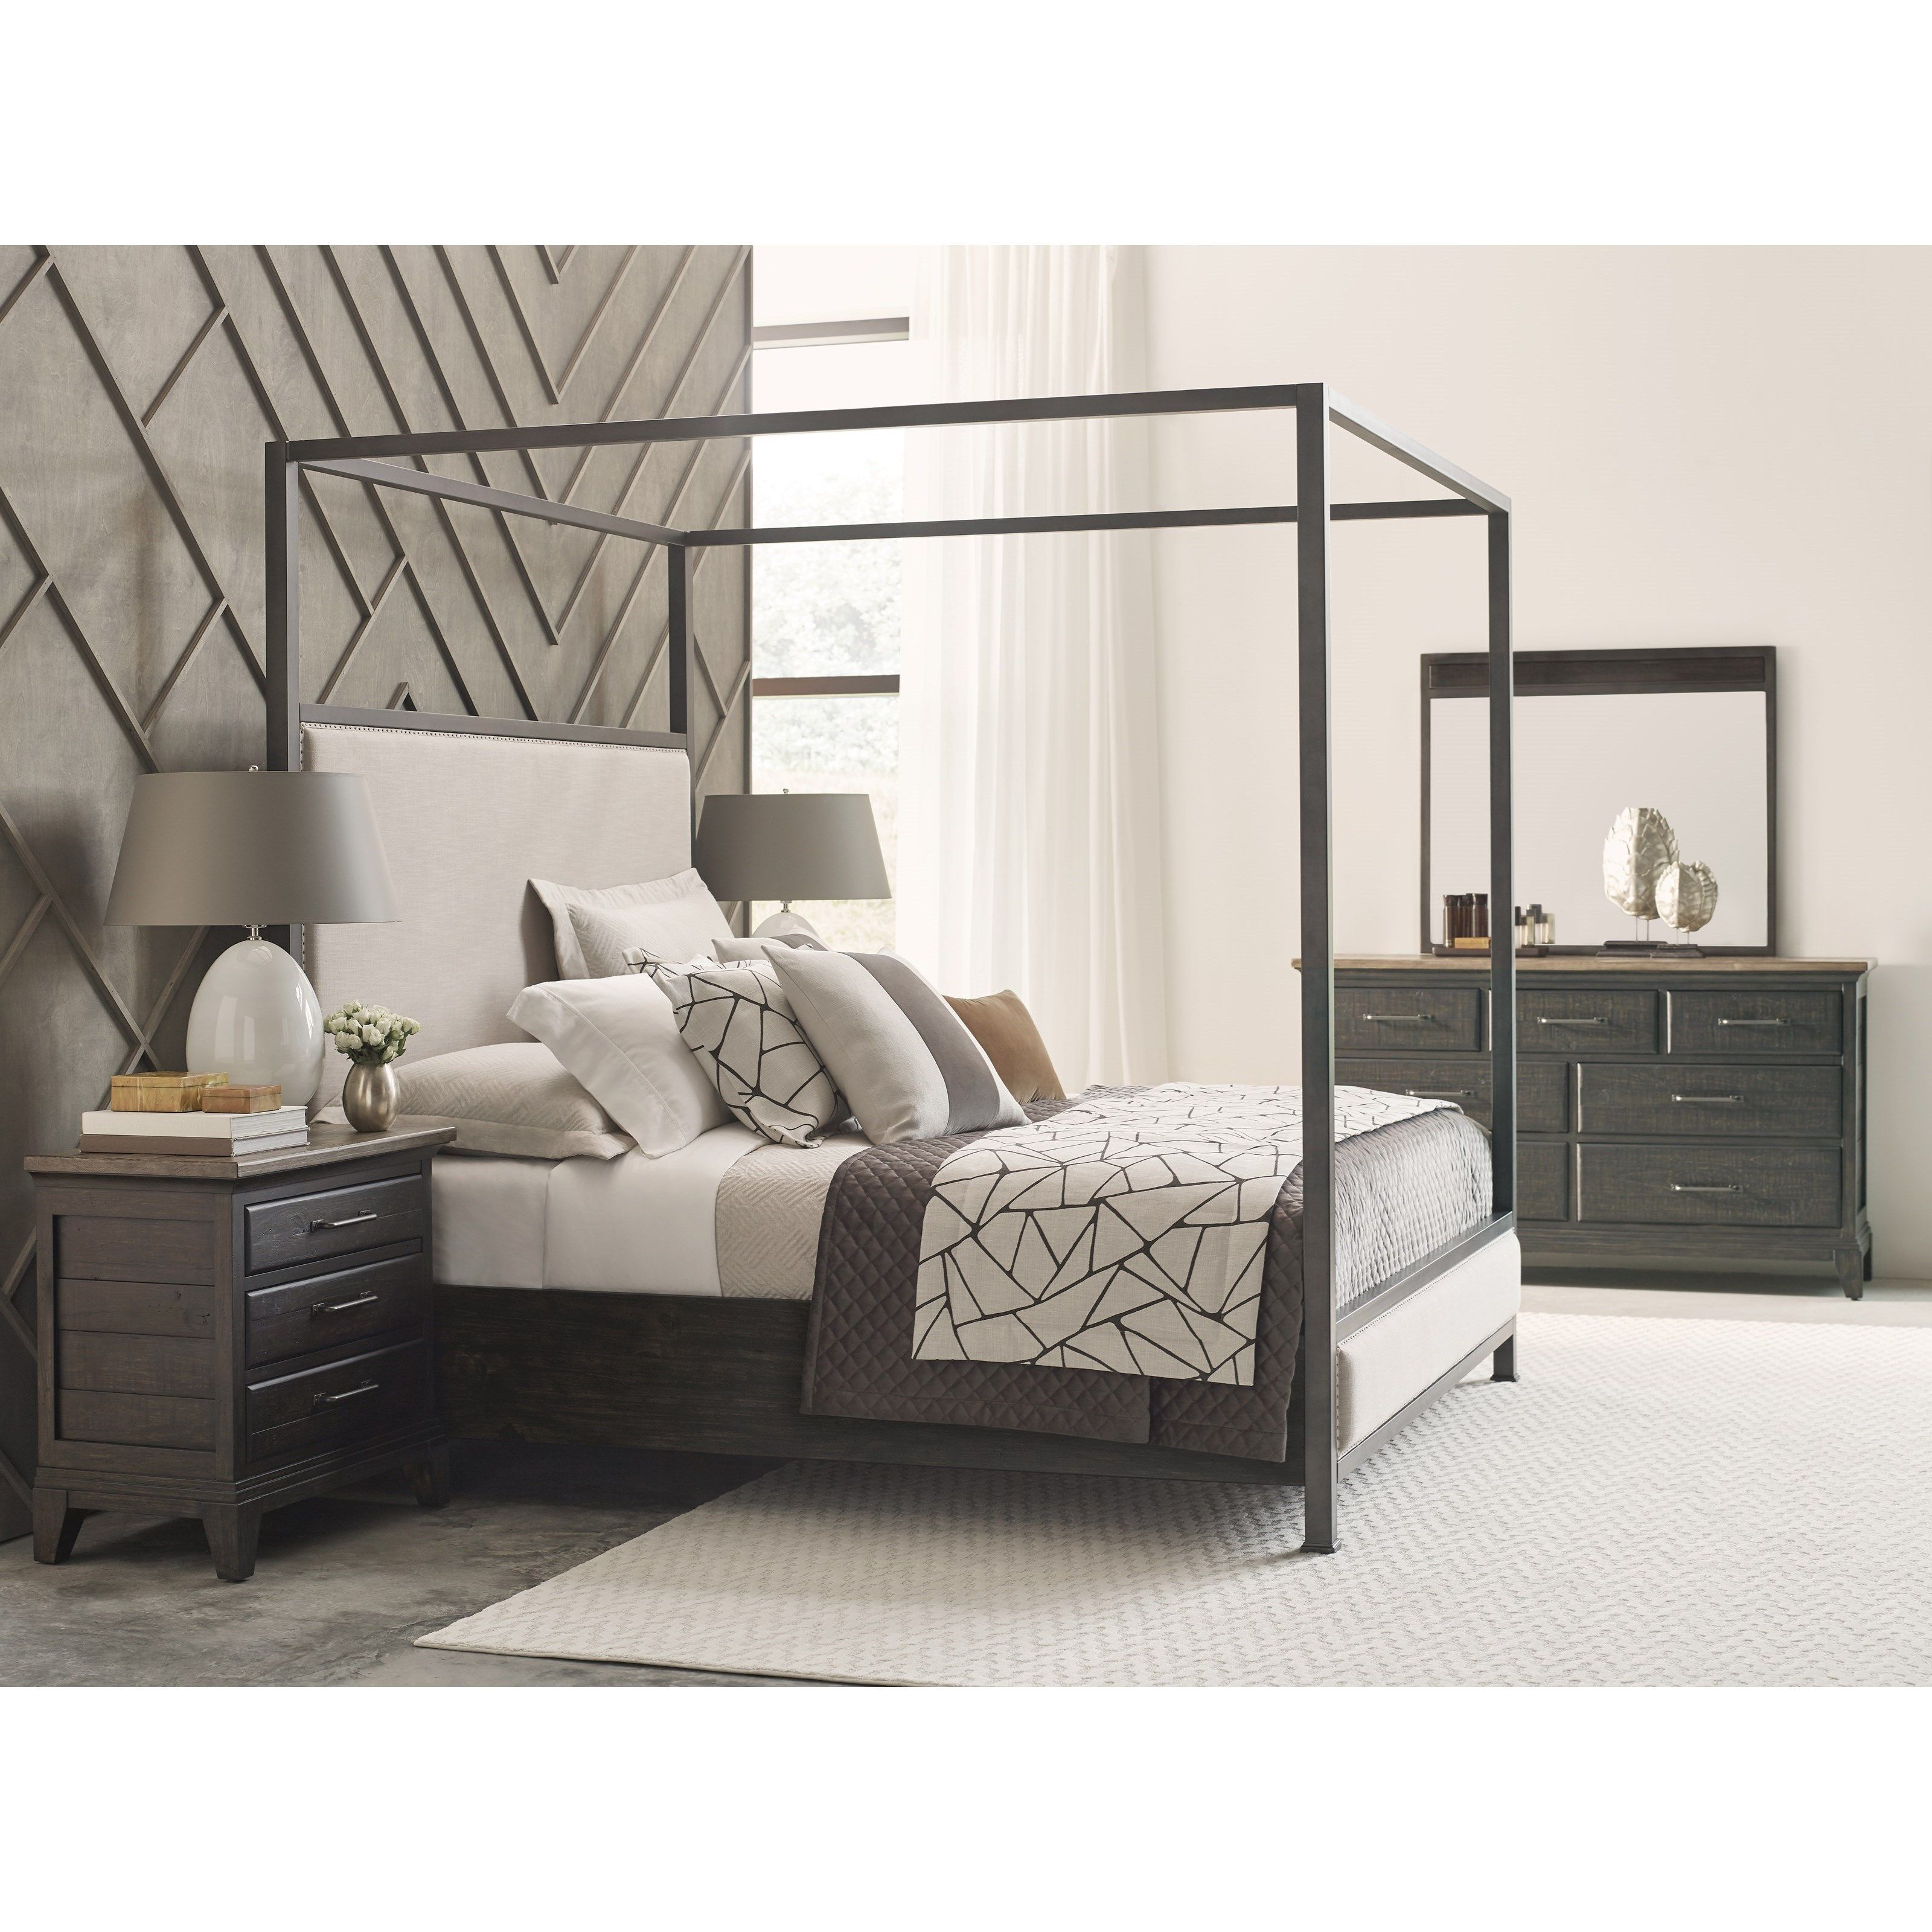 Plank Road Queen Bedroom Group By Kincaid Furniture Canopy